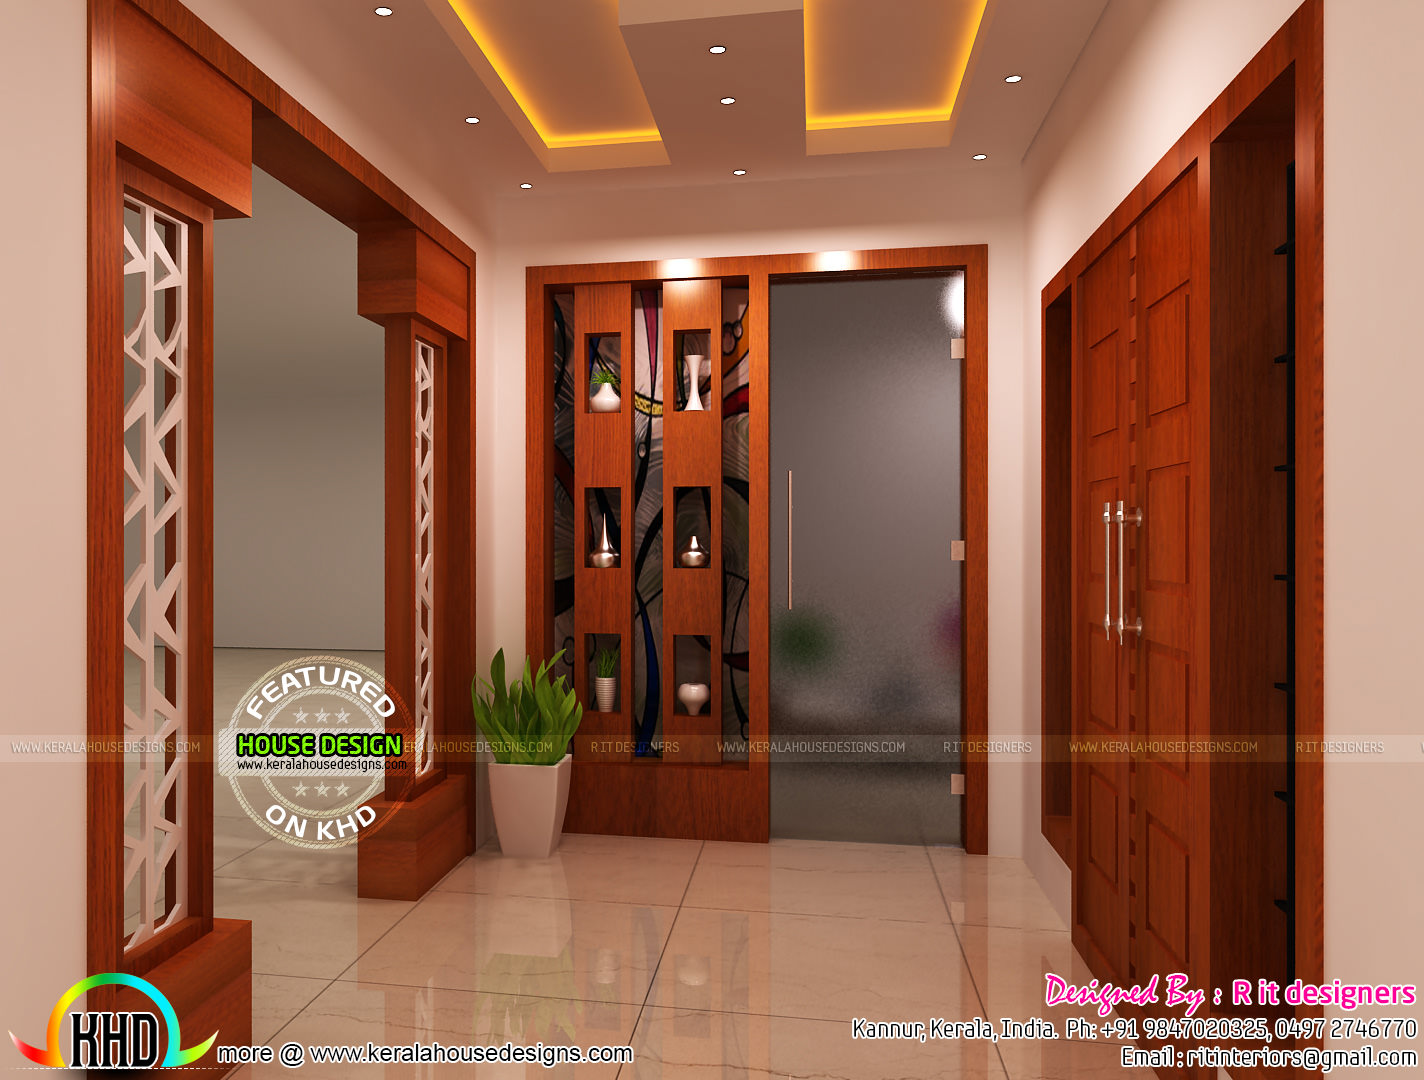 Bedroom kitchen living and foyer interiors kerala home for Bathroom interior design kerala